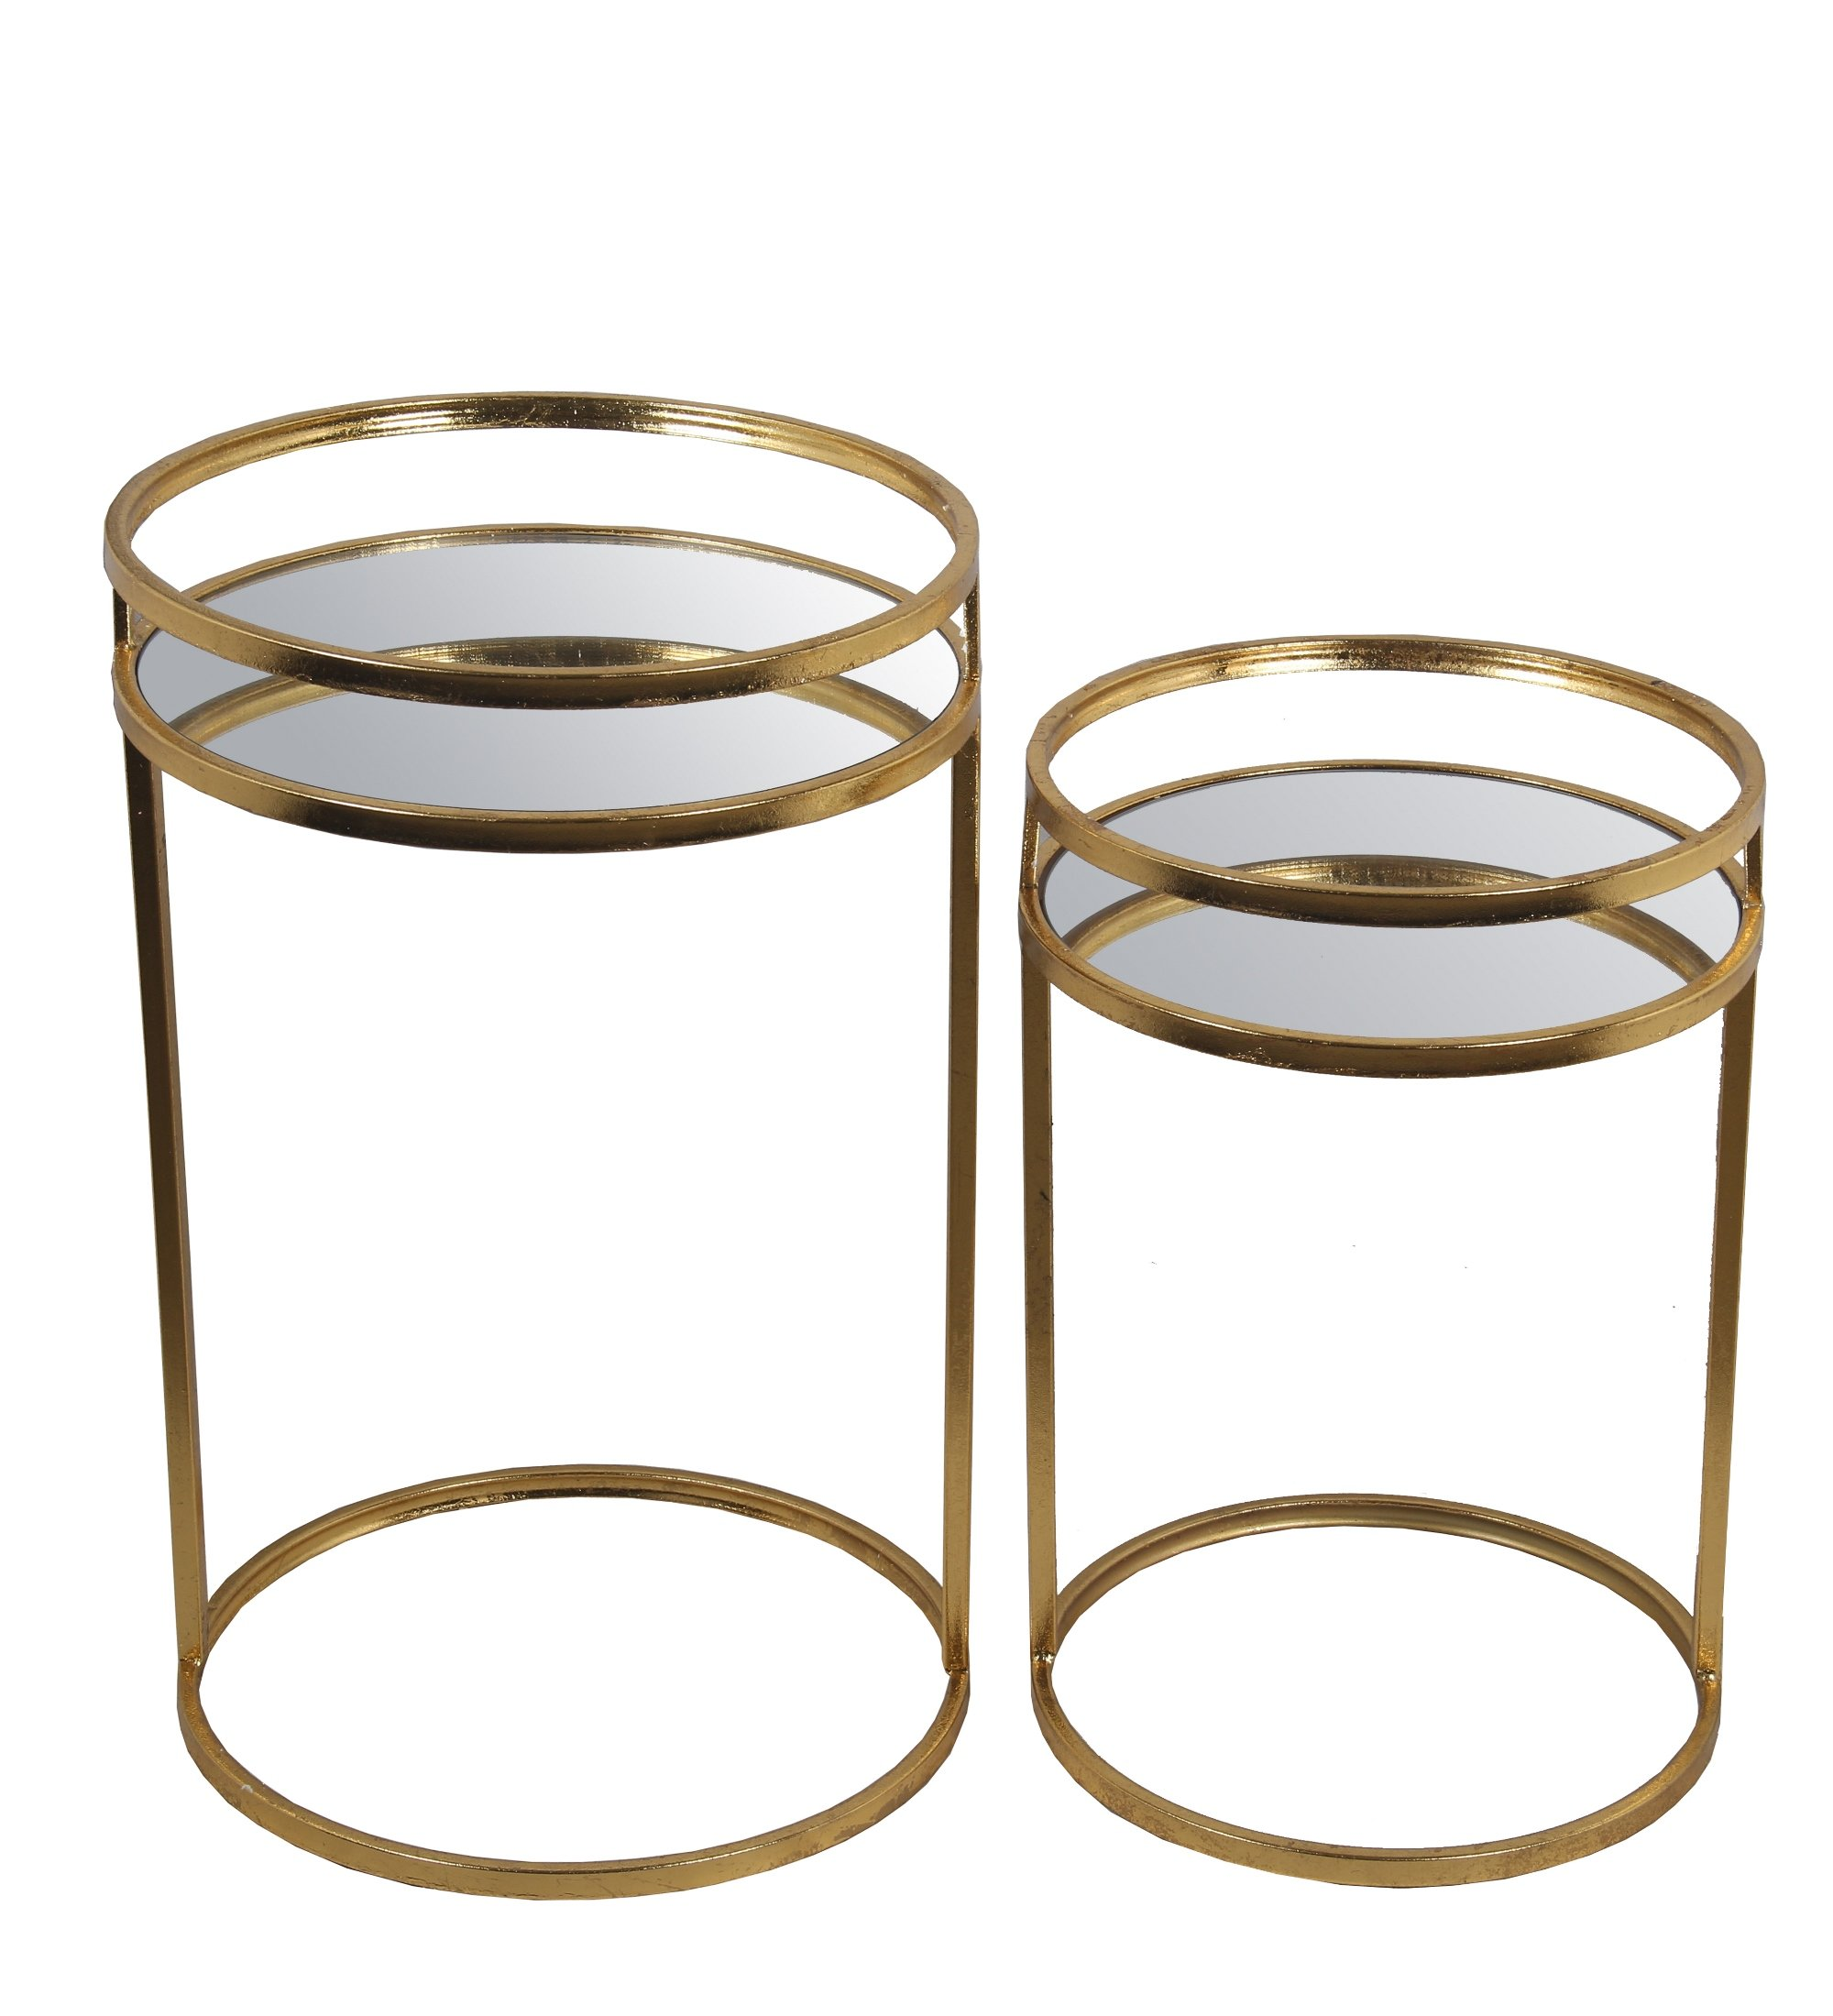 Privilege 71195 2 Piece Accent Leaf Table, Gold